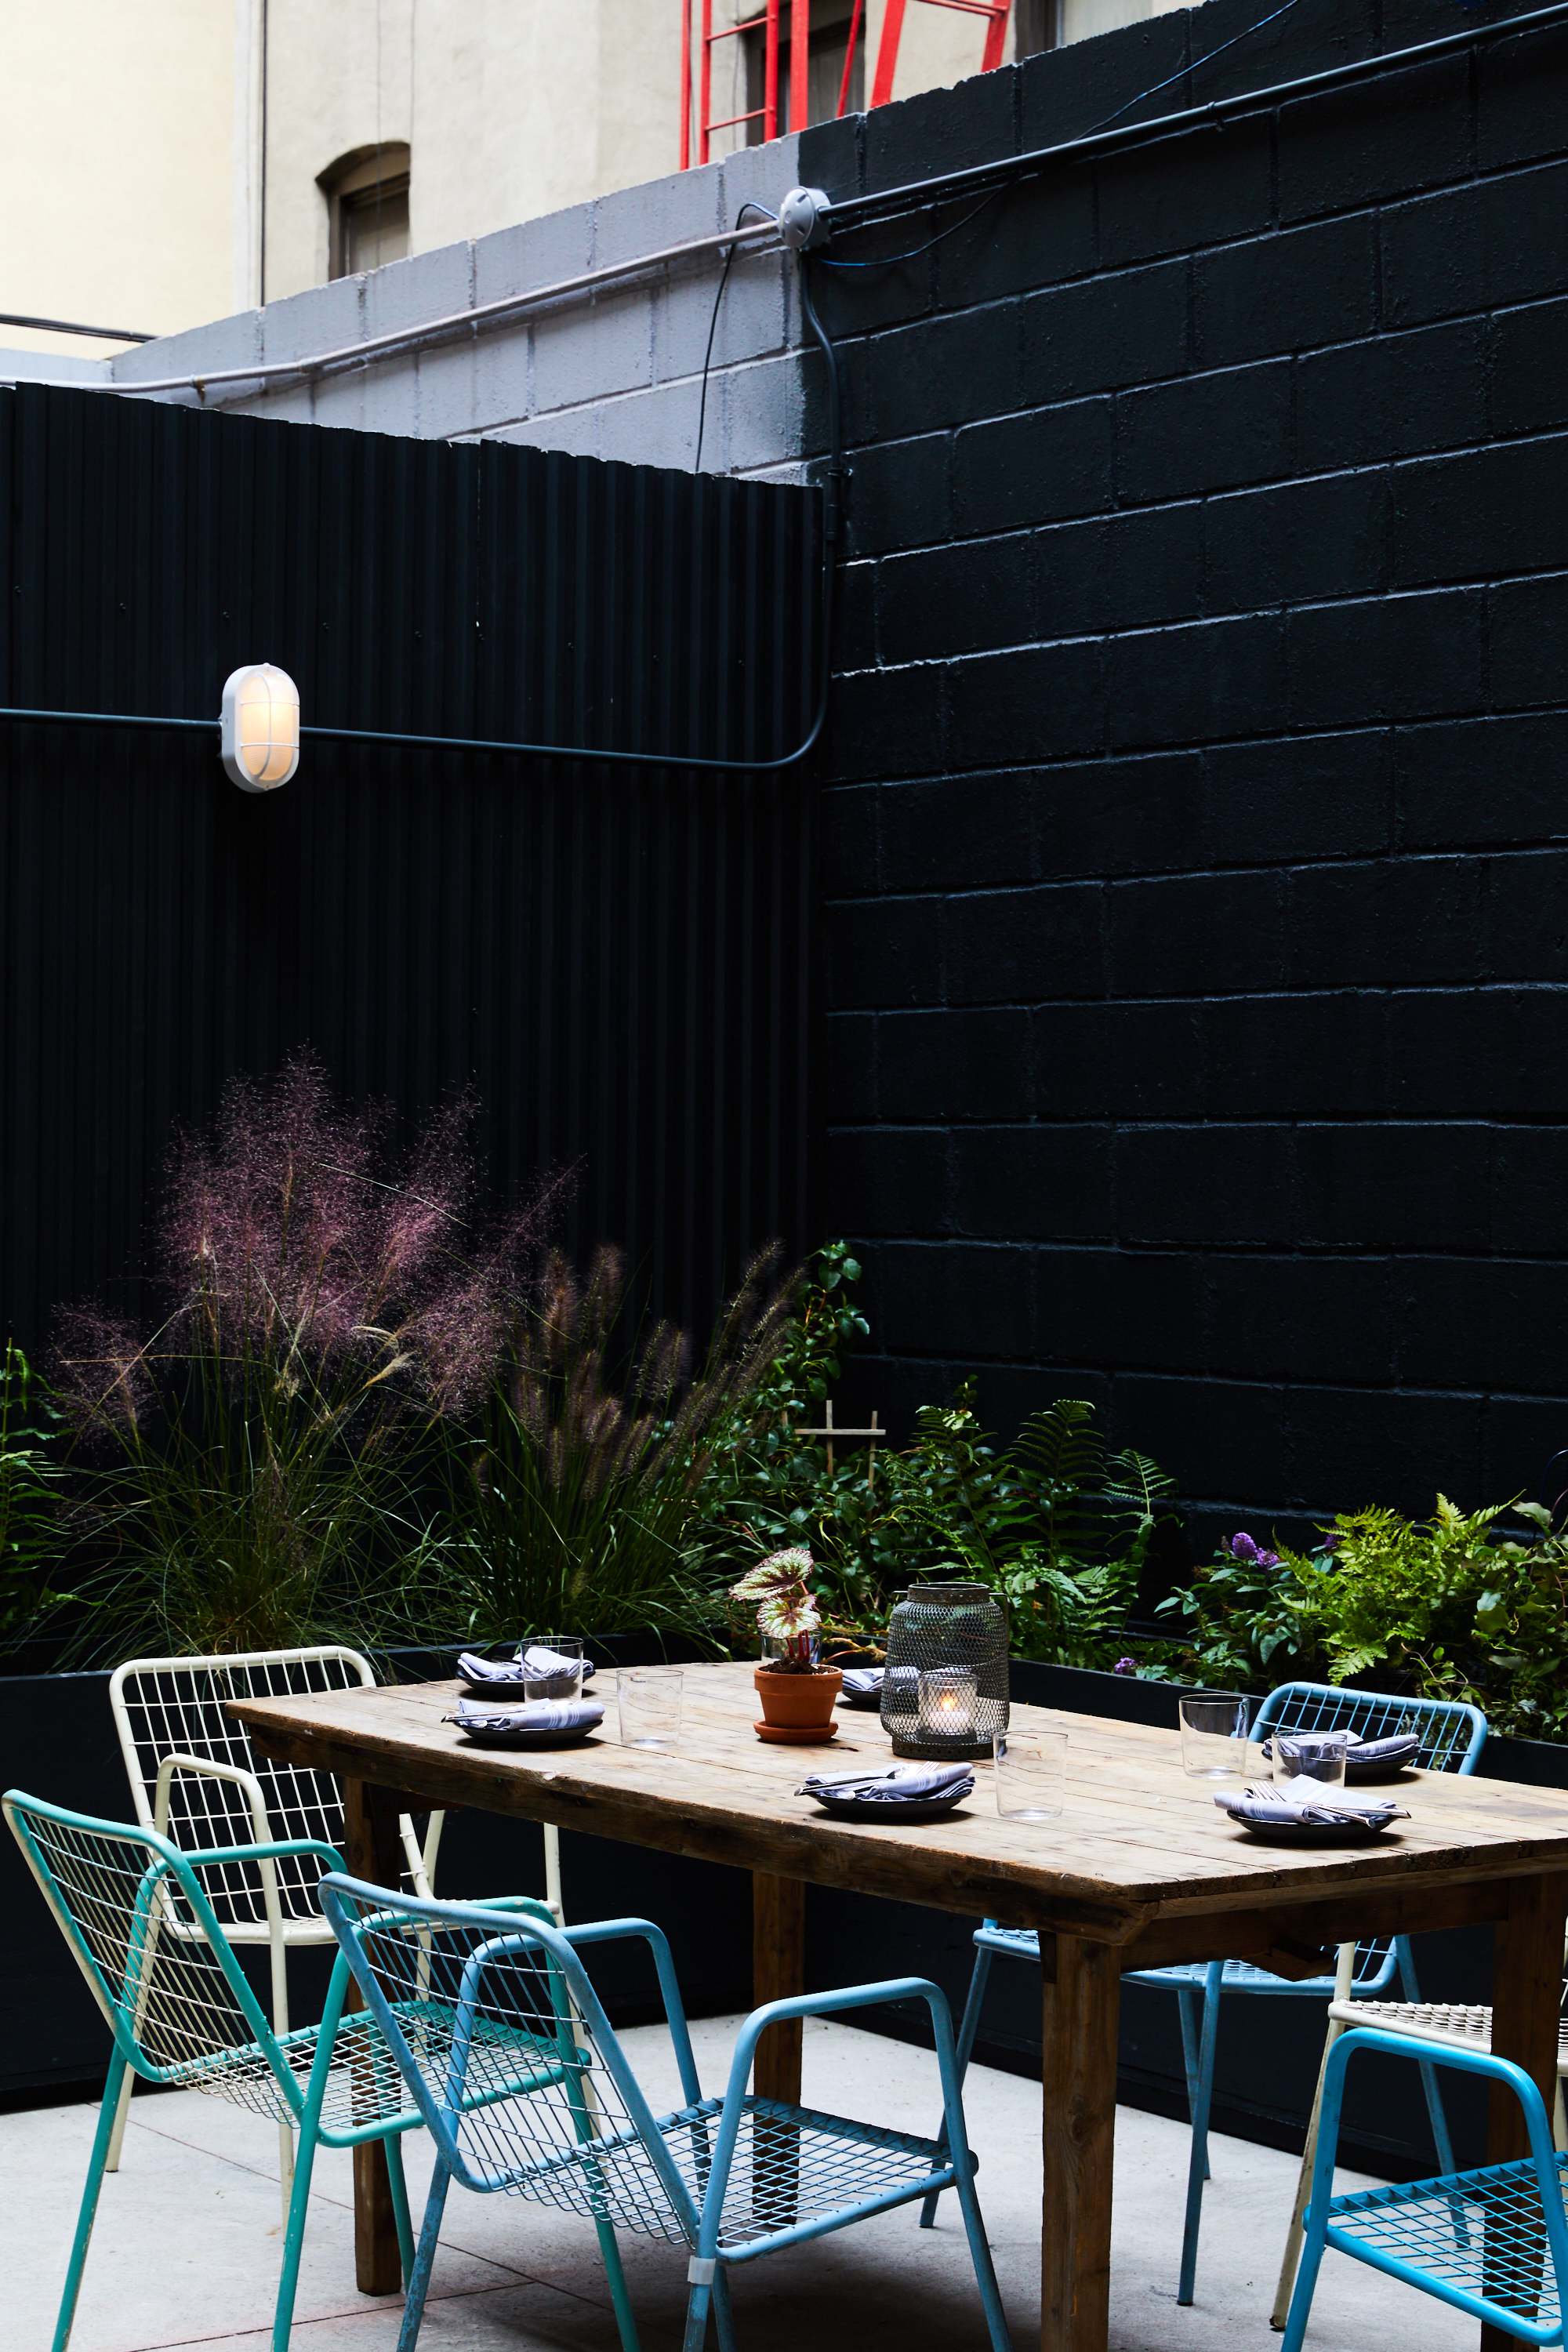 dine al fresco in our beautiful back patio